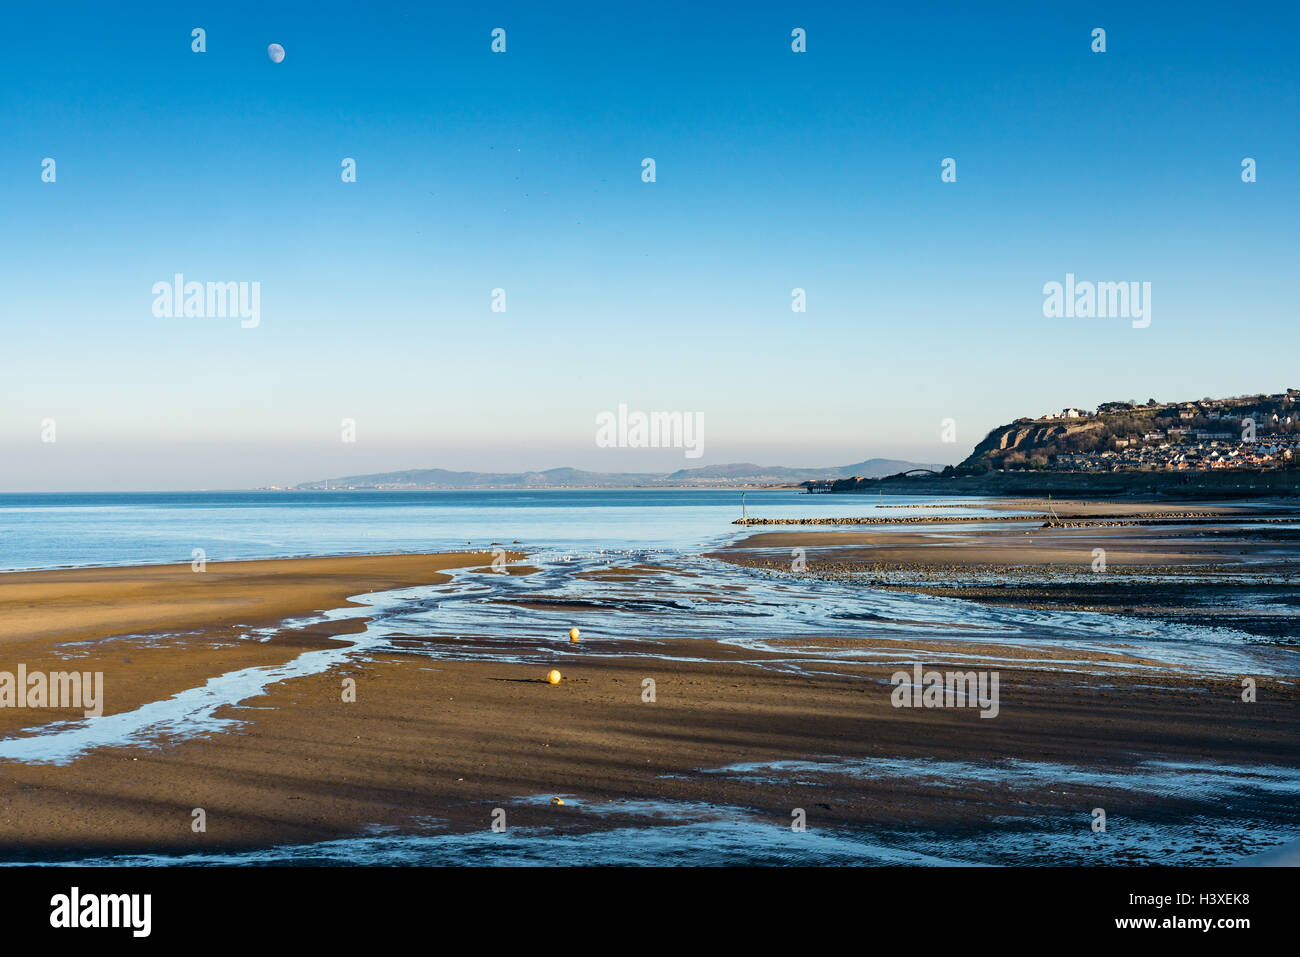 Tidal streams on Colwyn Bay beach looking along the coast towards Rhyl - Stock Image